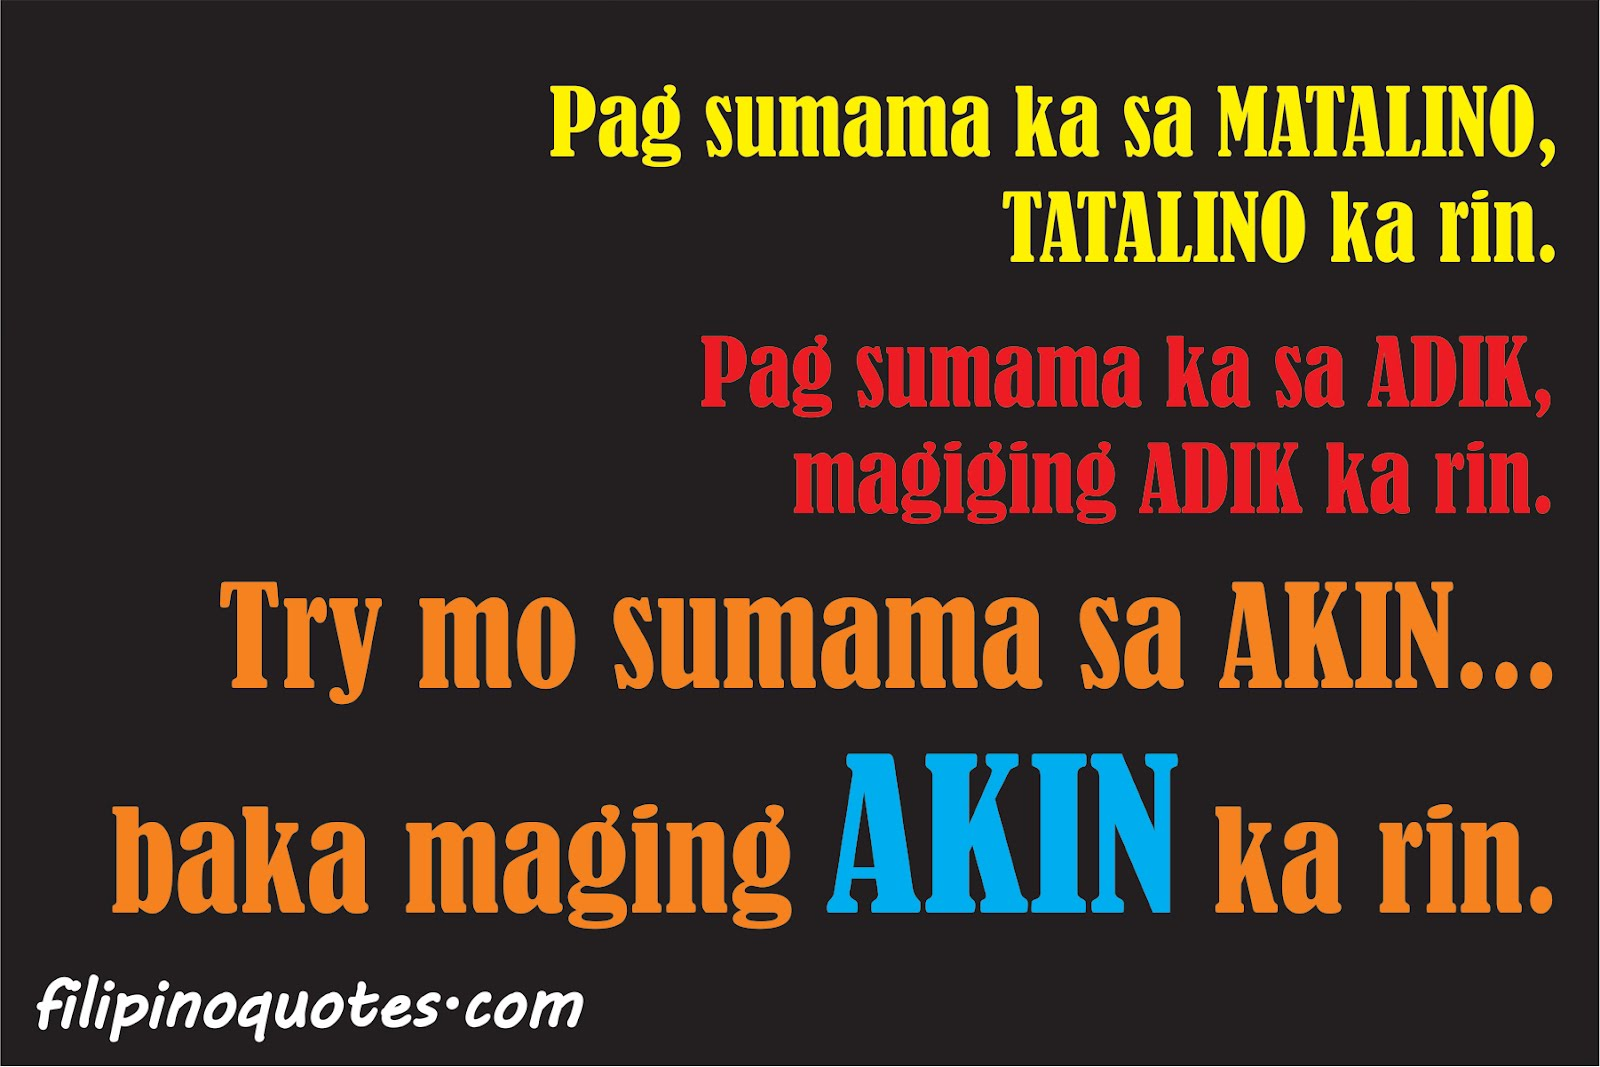 Funny Quotes Love Tagalog : Tagalog Banat Love Quotes 2012 - Tagalog Love Quotes